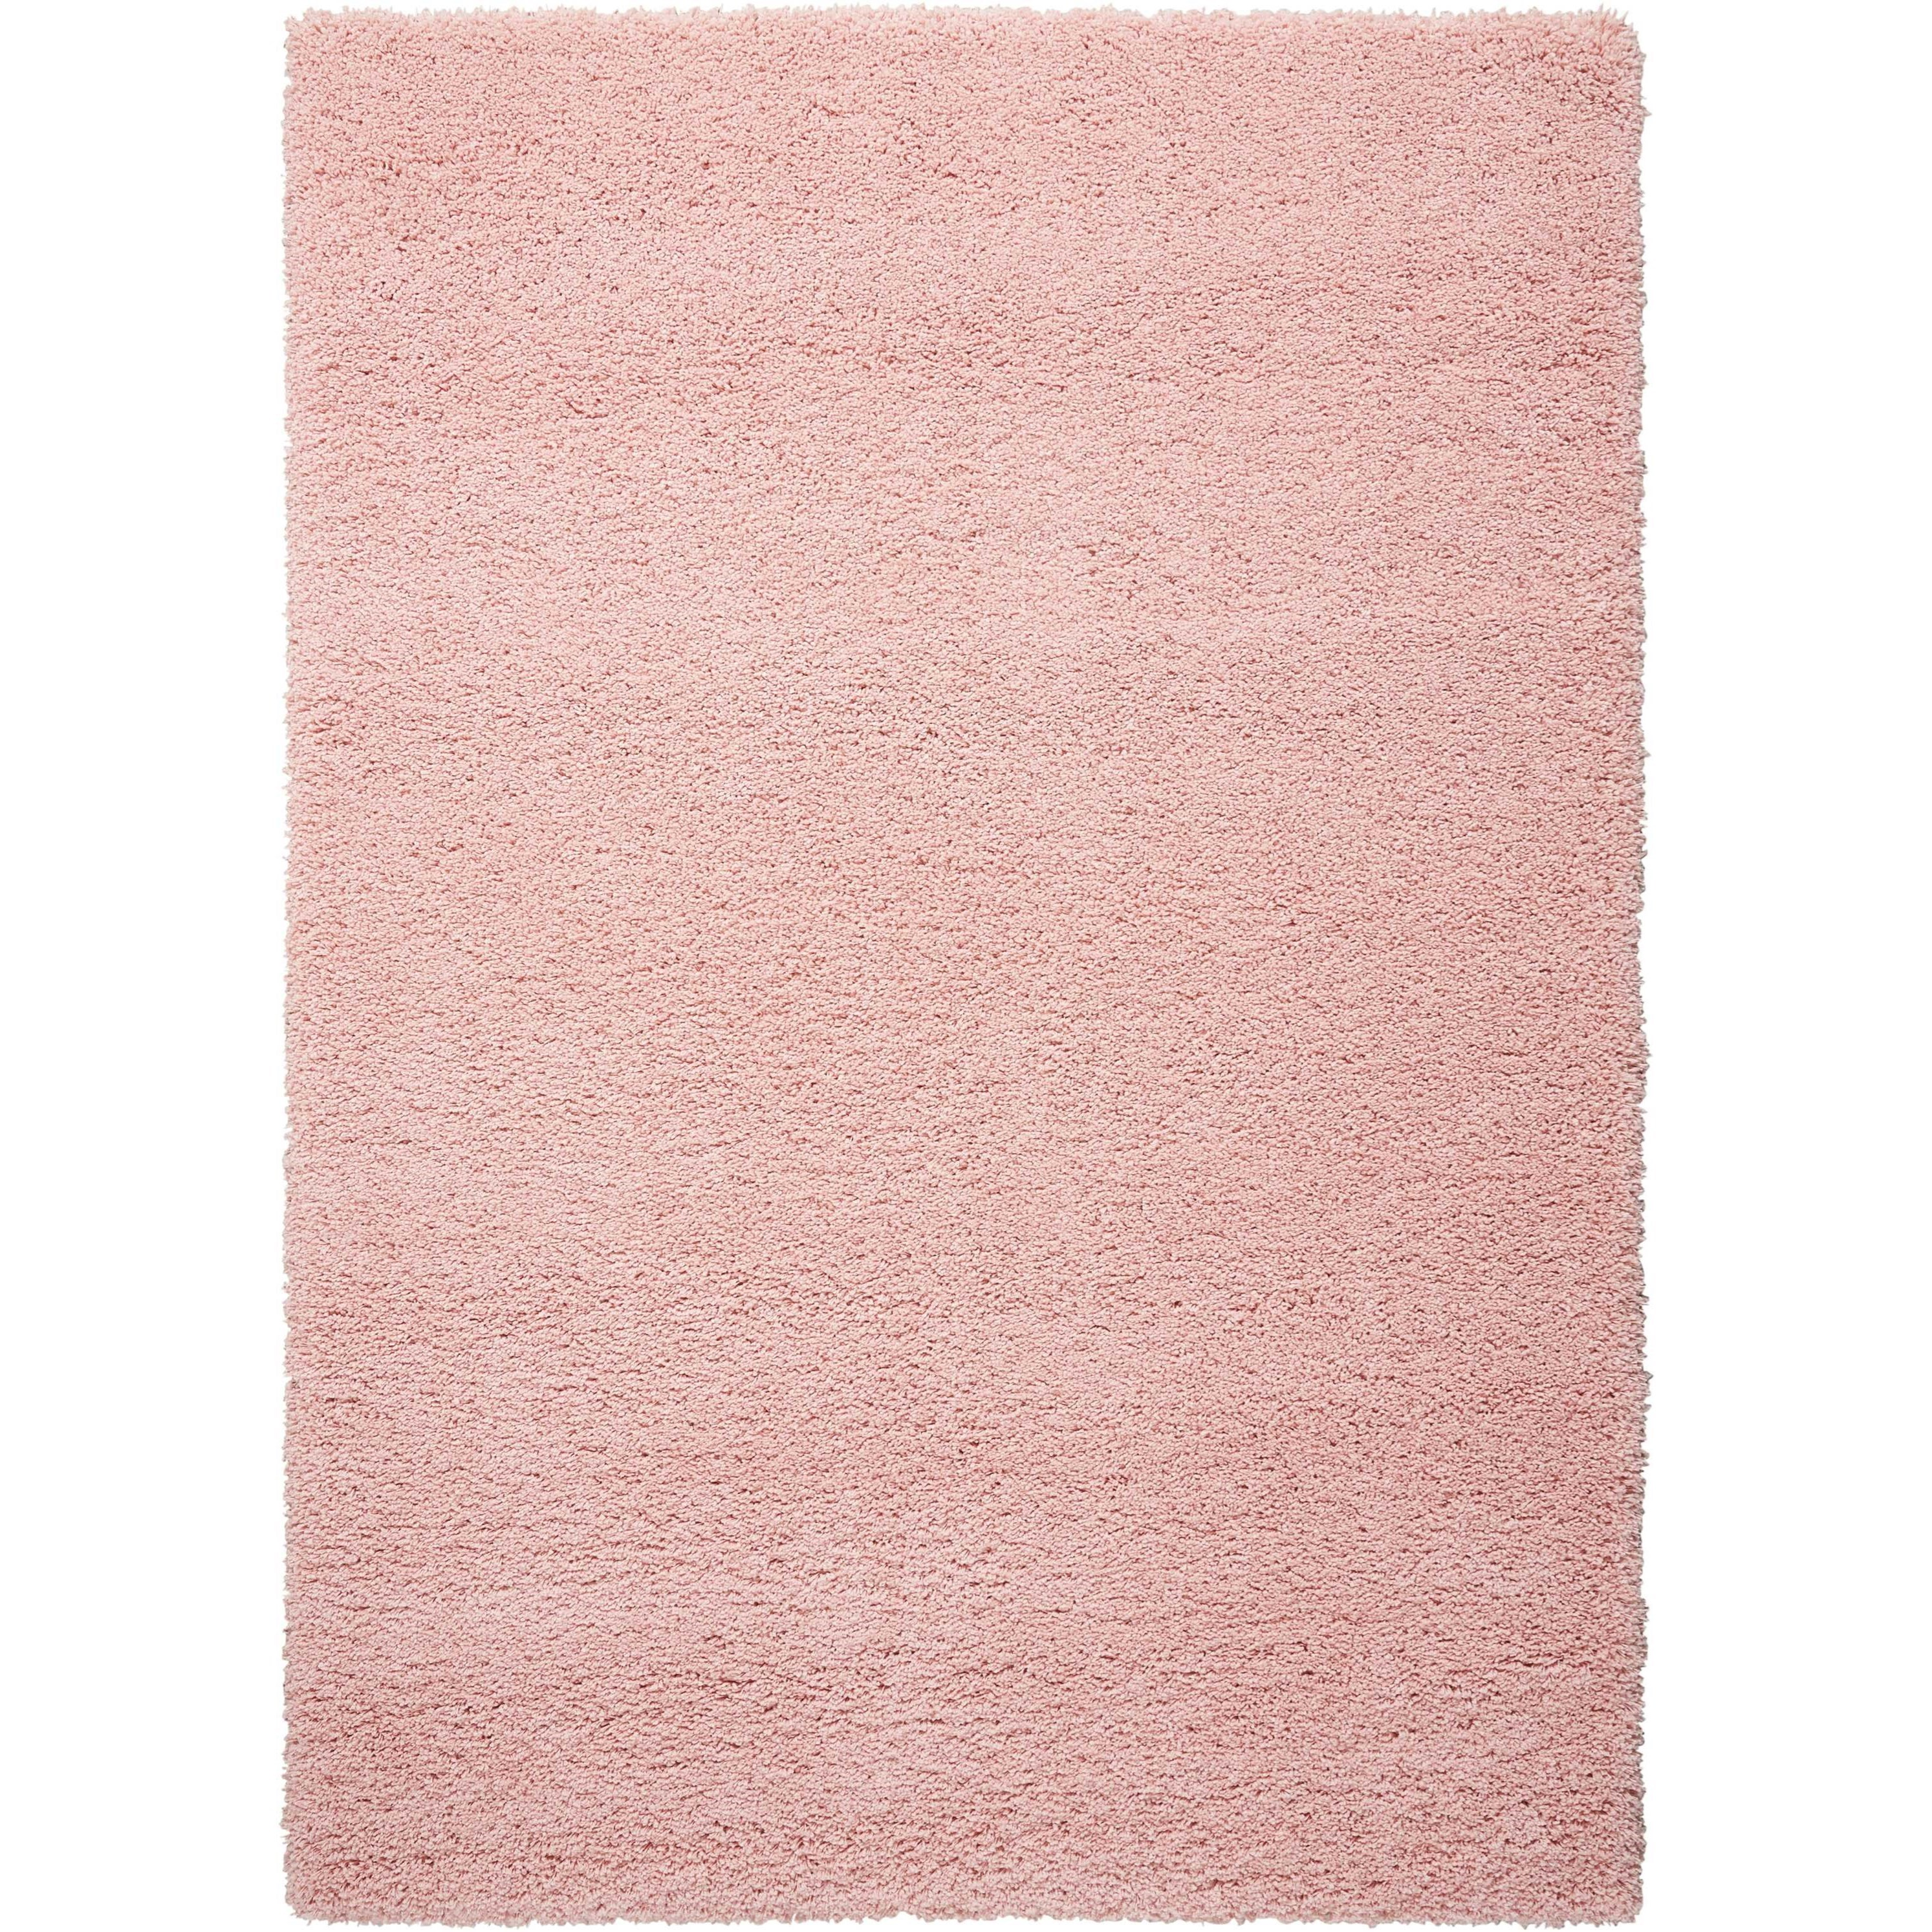 "Amore2 3'11"" X 5'11"" Blush Rug by Nourison at Home Collections Furniture"